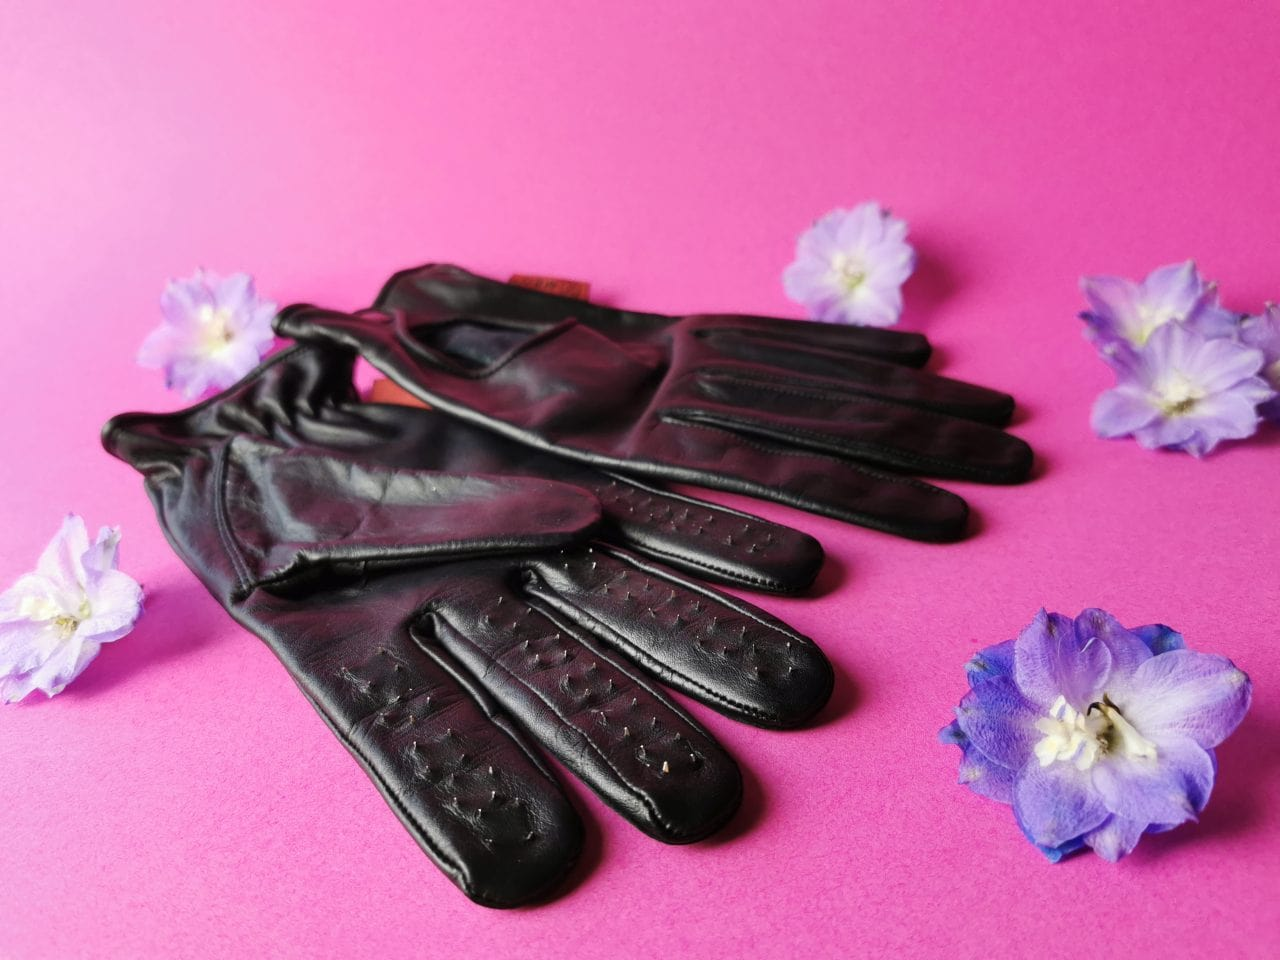 BDSM toy review by Tess: MEO Spiked Slave Pleasure Gloves From Dr. Sado